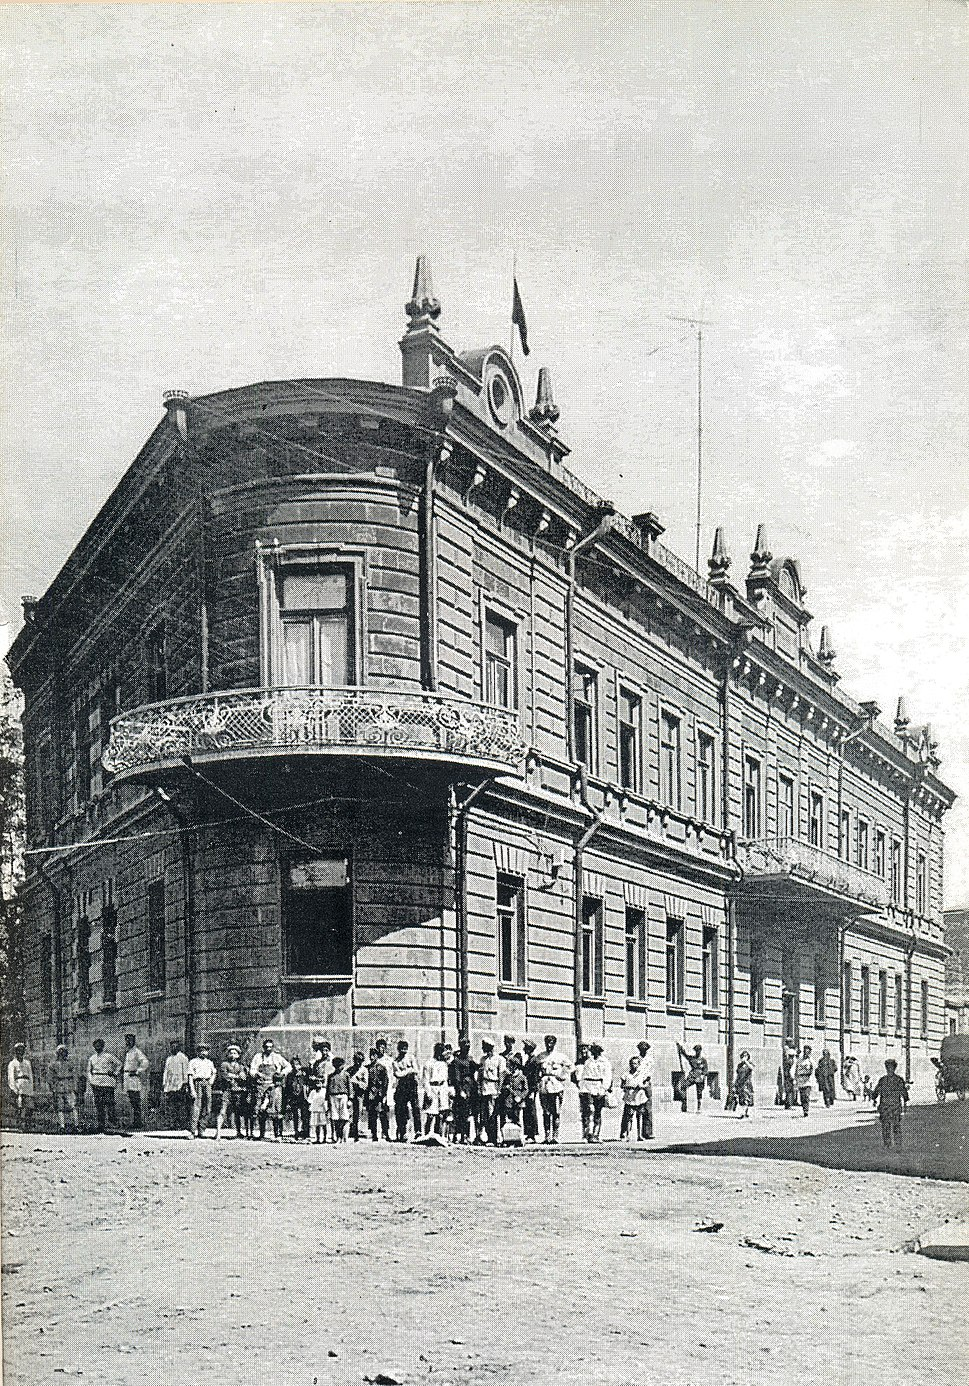 Government-House-of-Republic-of-Armenia-1918-1920